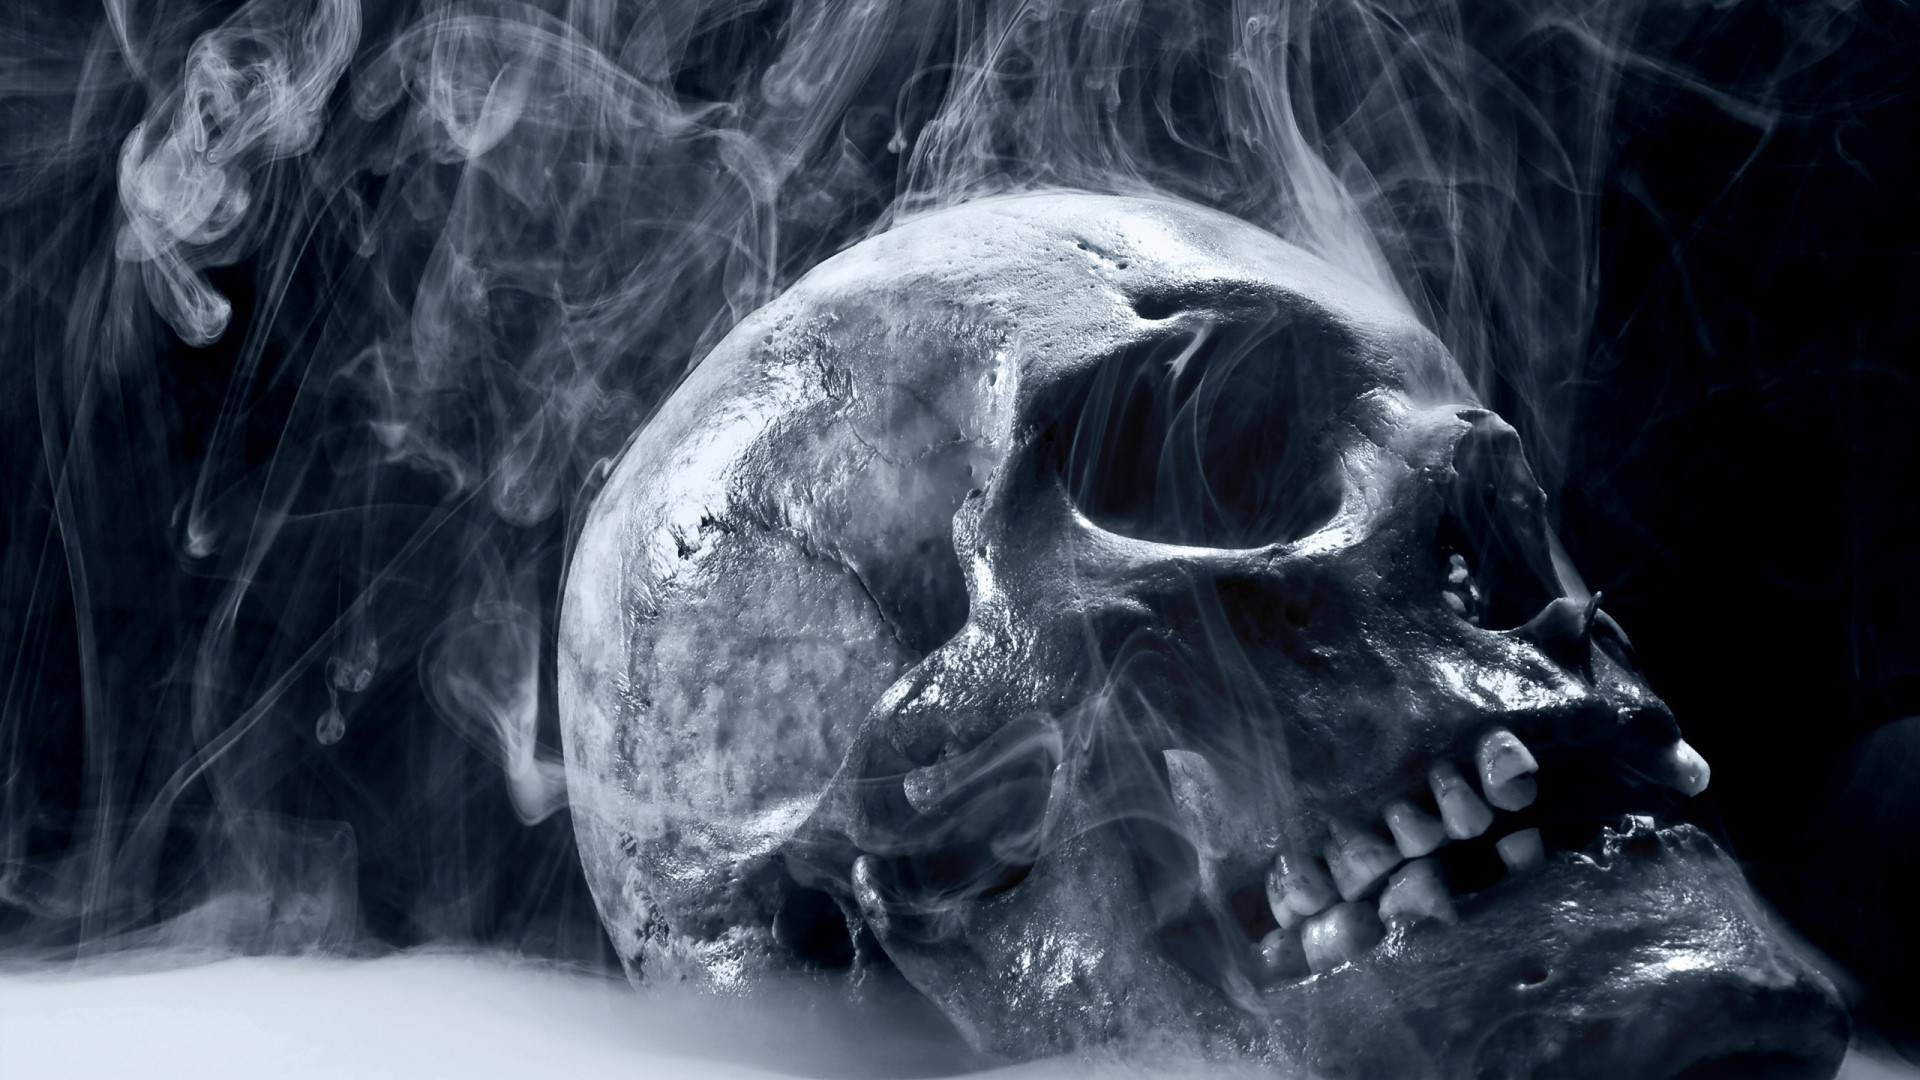 1920x1080 Smoke and Skull Scary Wallpaper